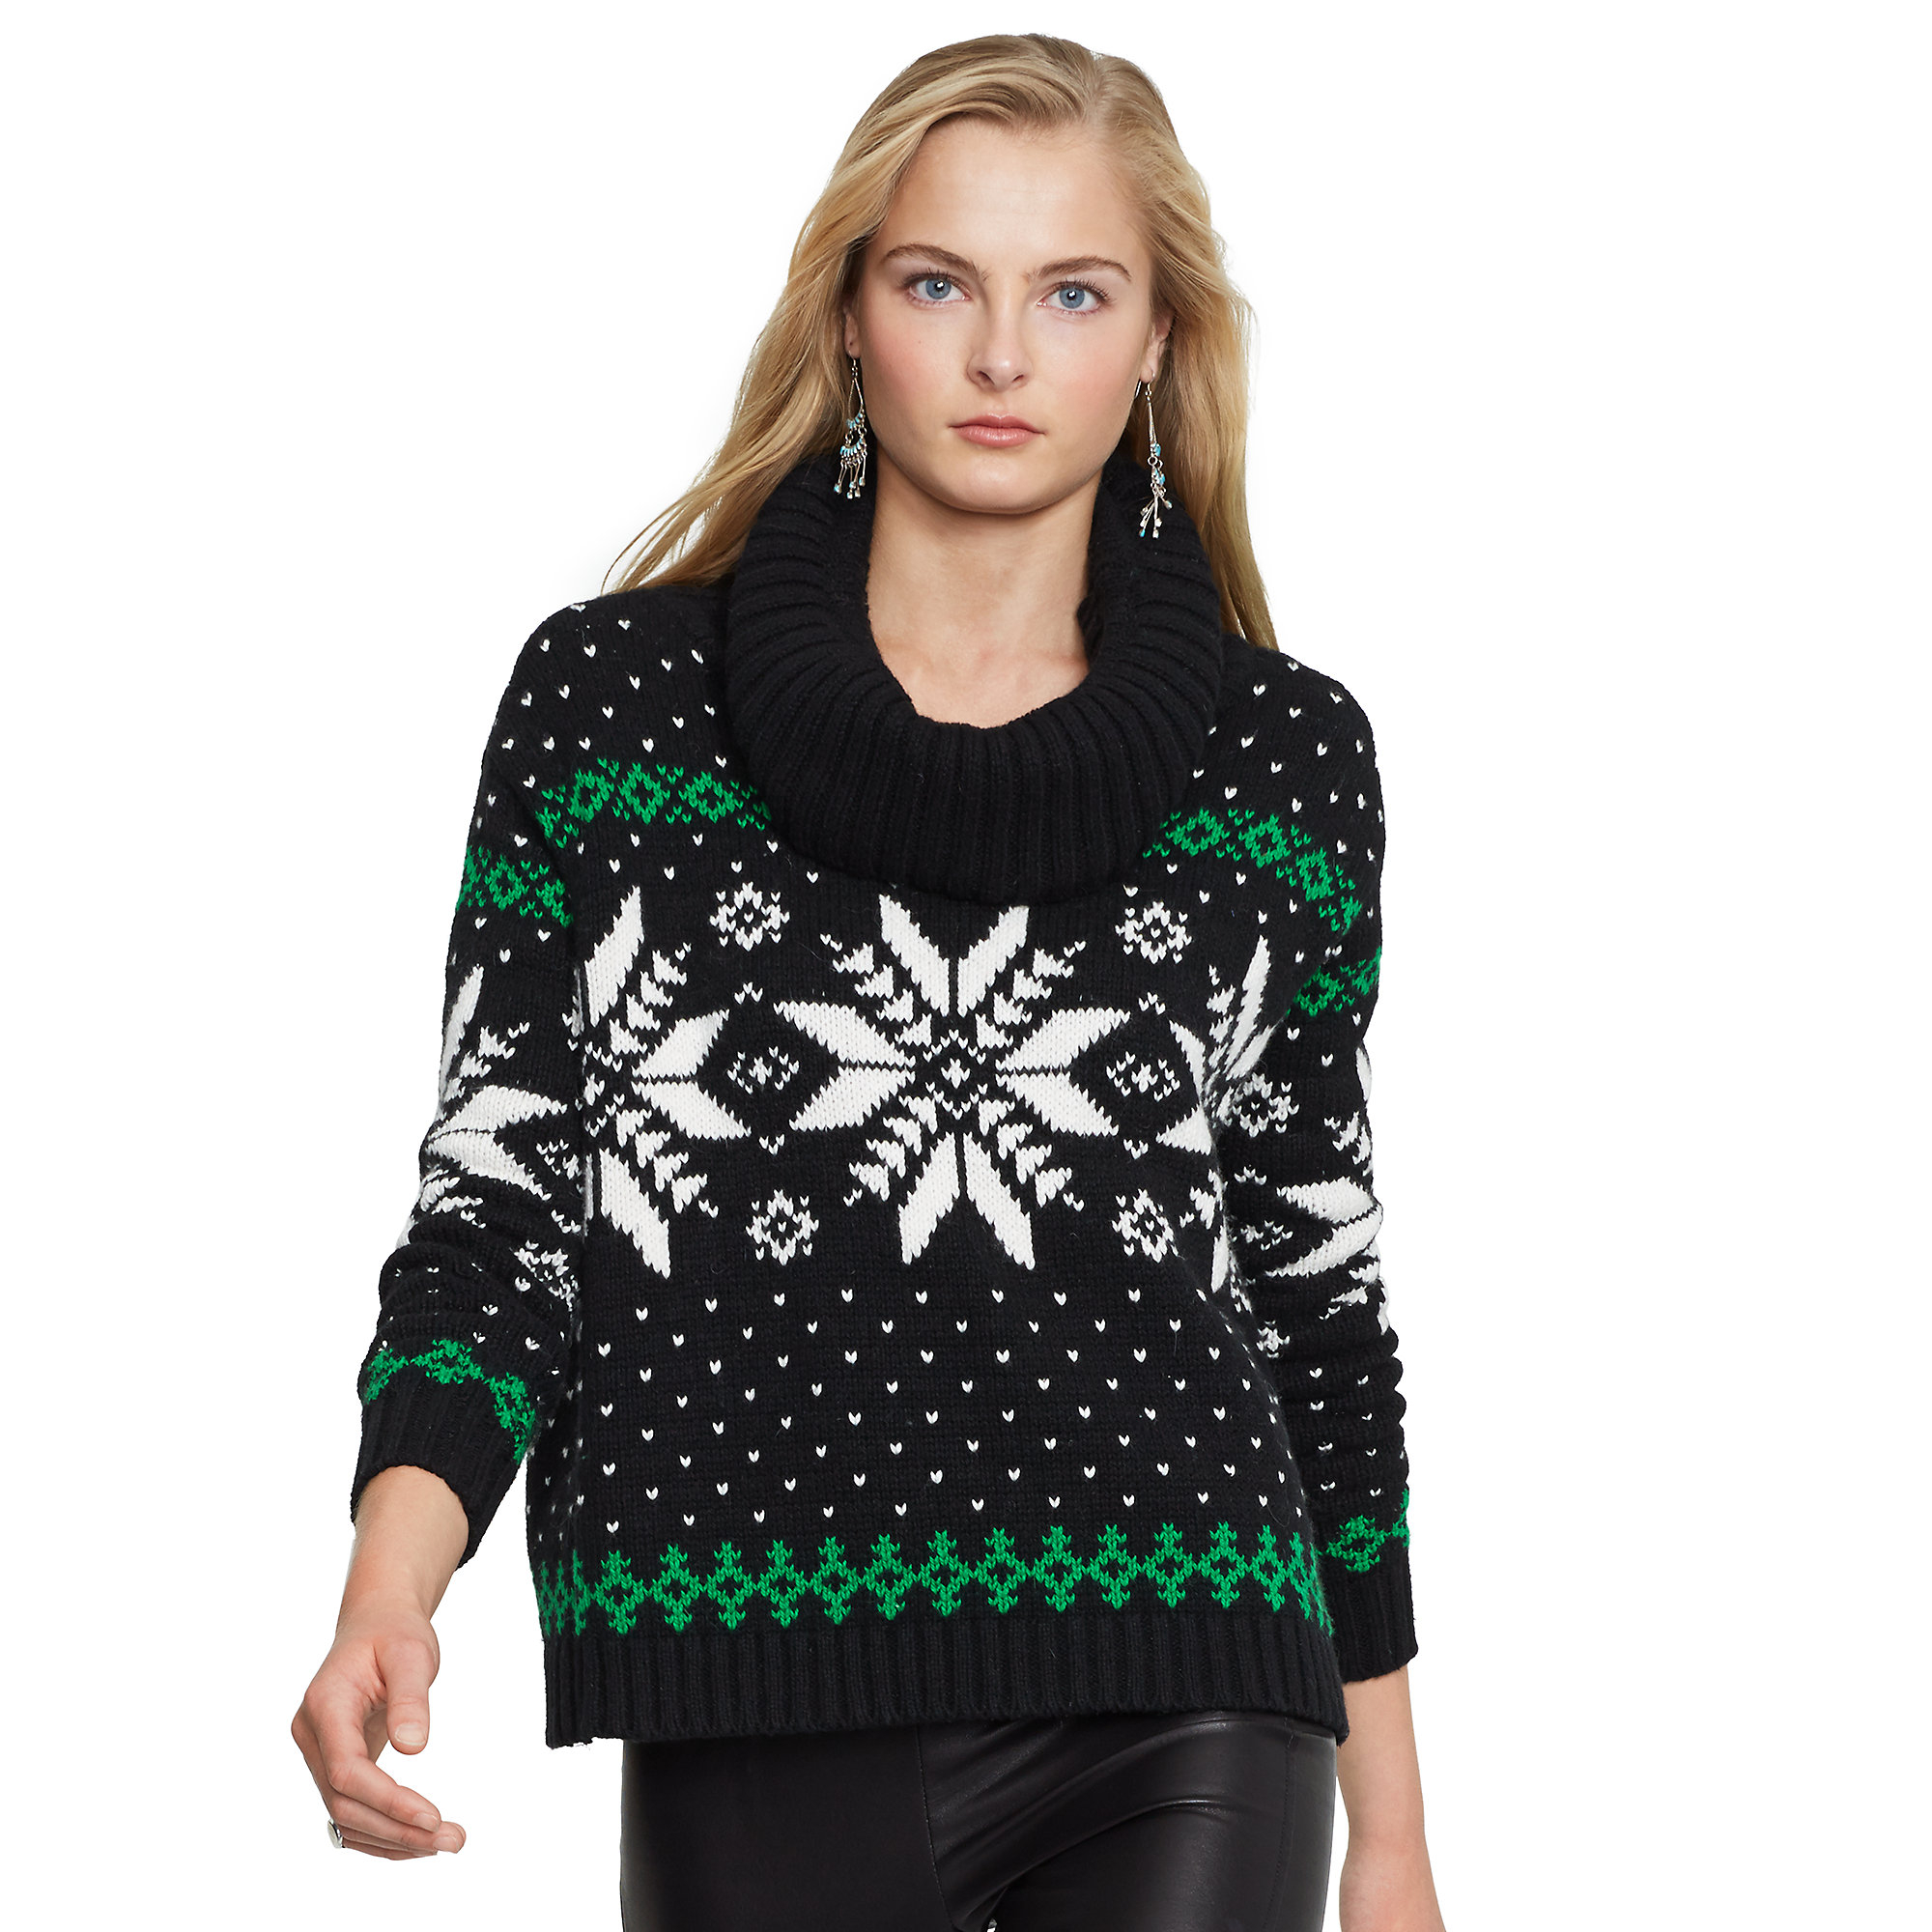 polo-ralph-lauren-black-snowflake-turtleneck-sweater -product-1-24757628-3-876803297-normal.jpeg